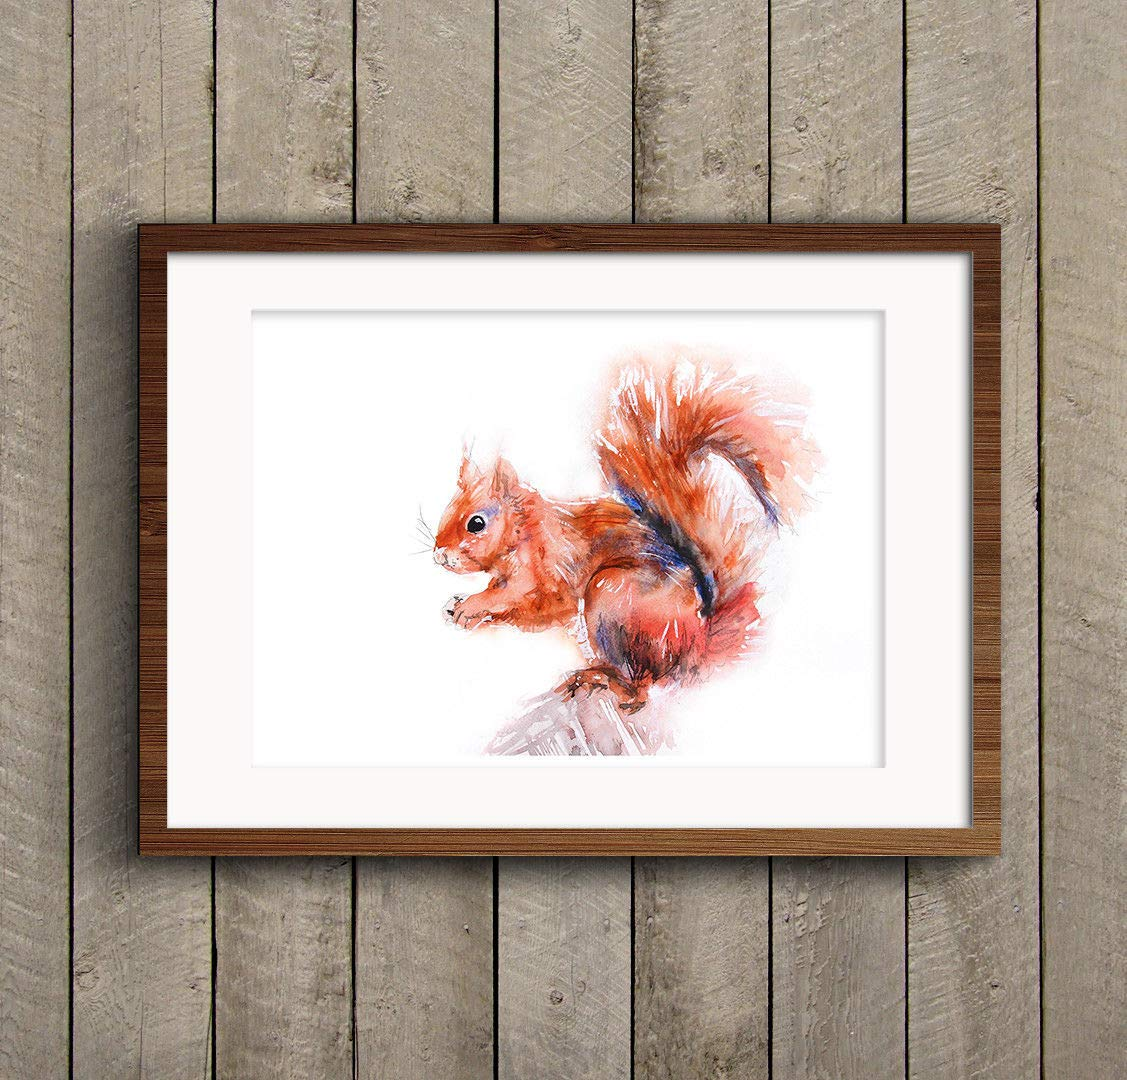 Fine Art Print of My Original Red Squirrel Watercolour Painting Signed A3 A4 Wildlife Animal